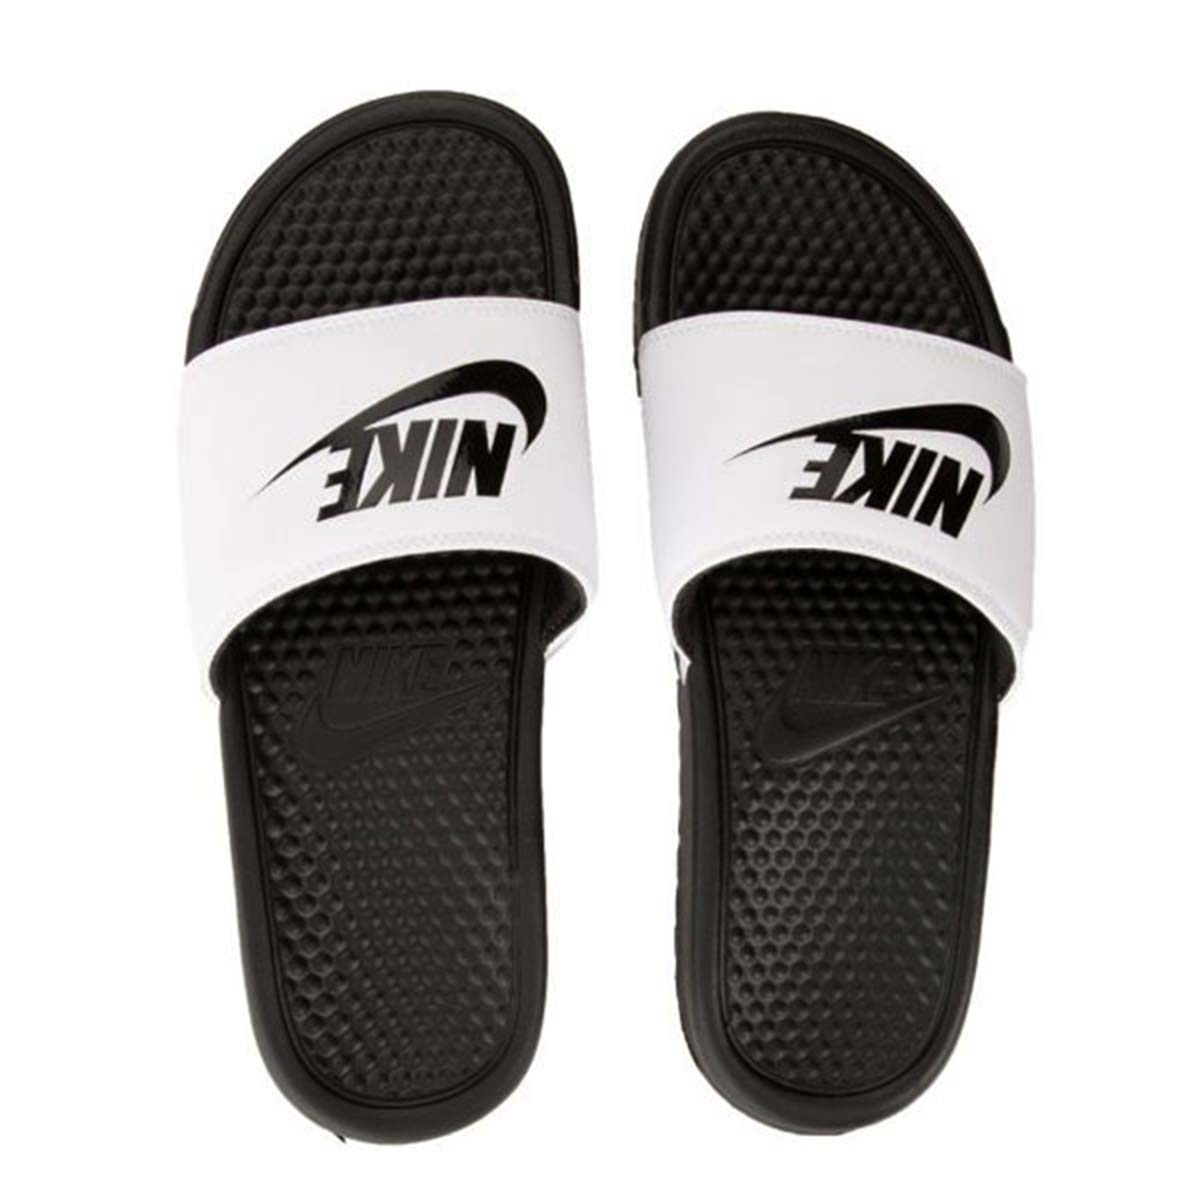 690c86333 Buy Nike Benassi JDI Flip flops (White Black) Online at Lowest Price in  India